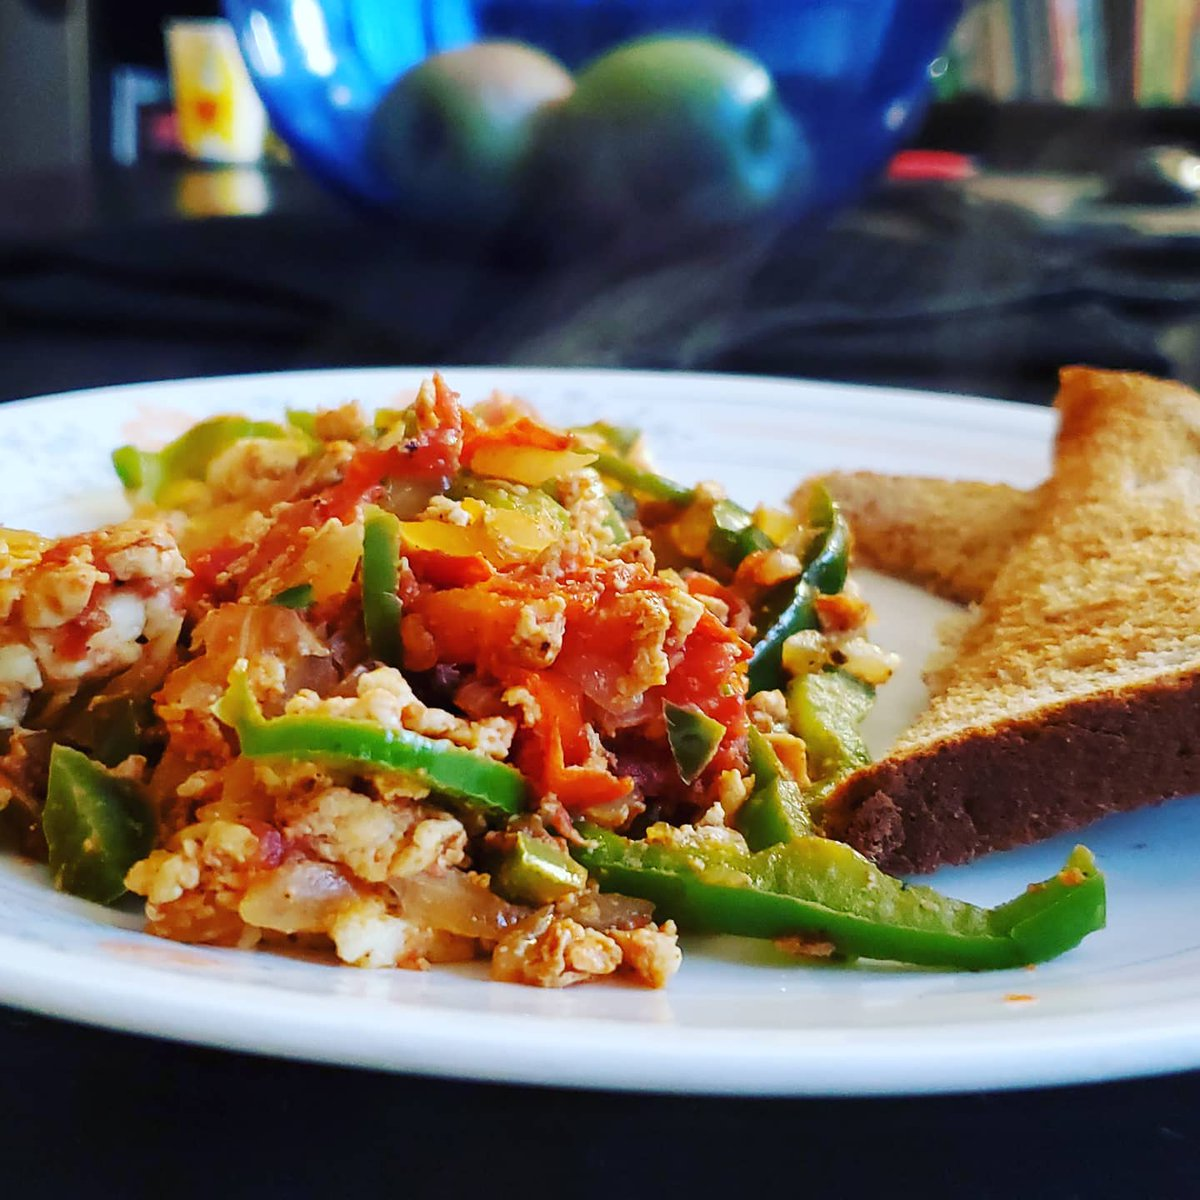 Egg white scramble with green bell peppers, garlic, onions, jalapeños, tomatoes and a side of whole wheat toast.  24g protein 23g carbs 5g< fats  #ovotarian #eggs  #eggwhitesandveggies #onions #greenbellpepper #garlic #healthy #wholewheat #toast #tomatoes🍅